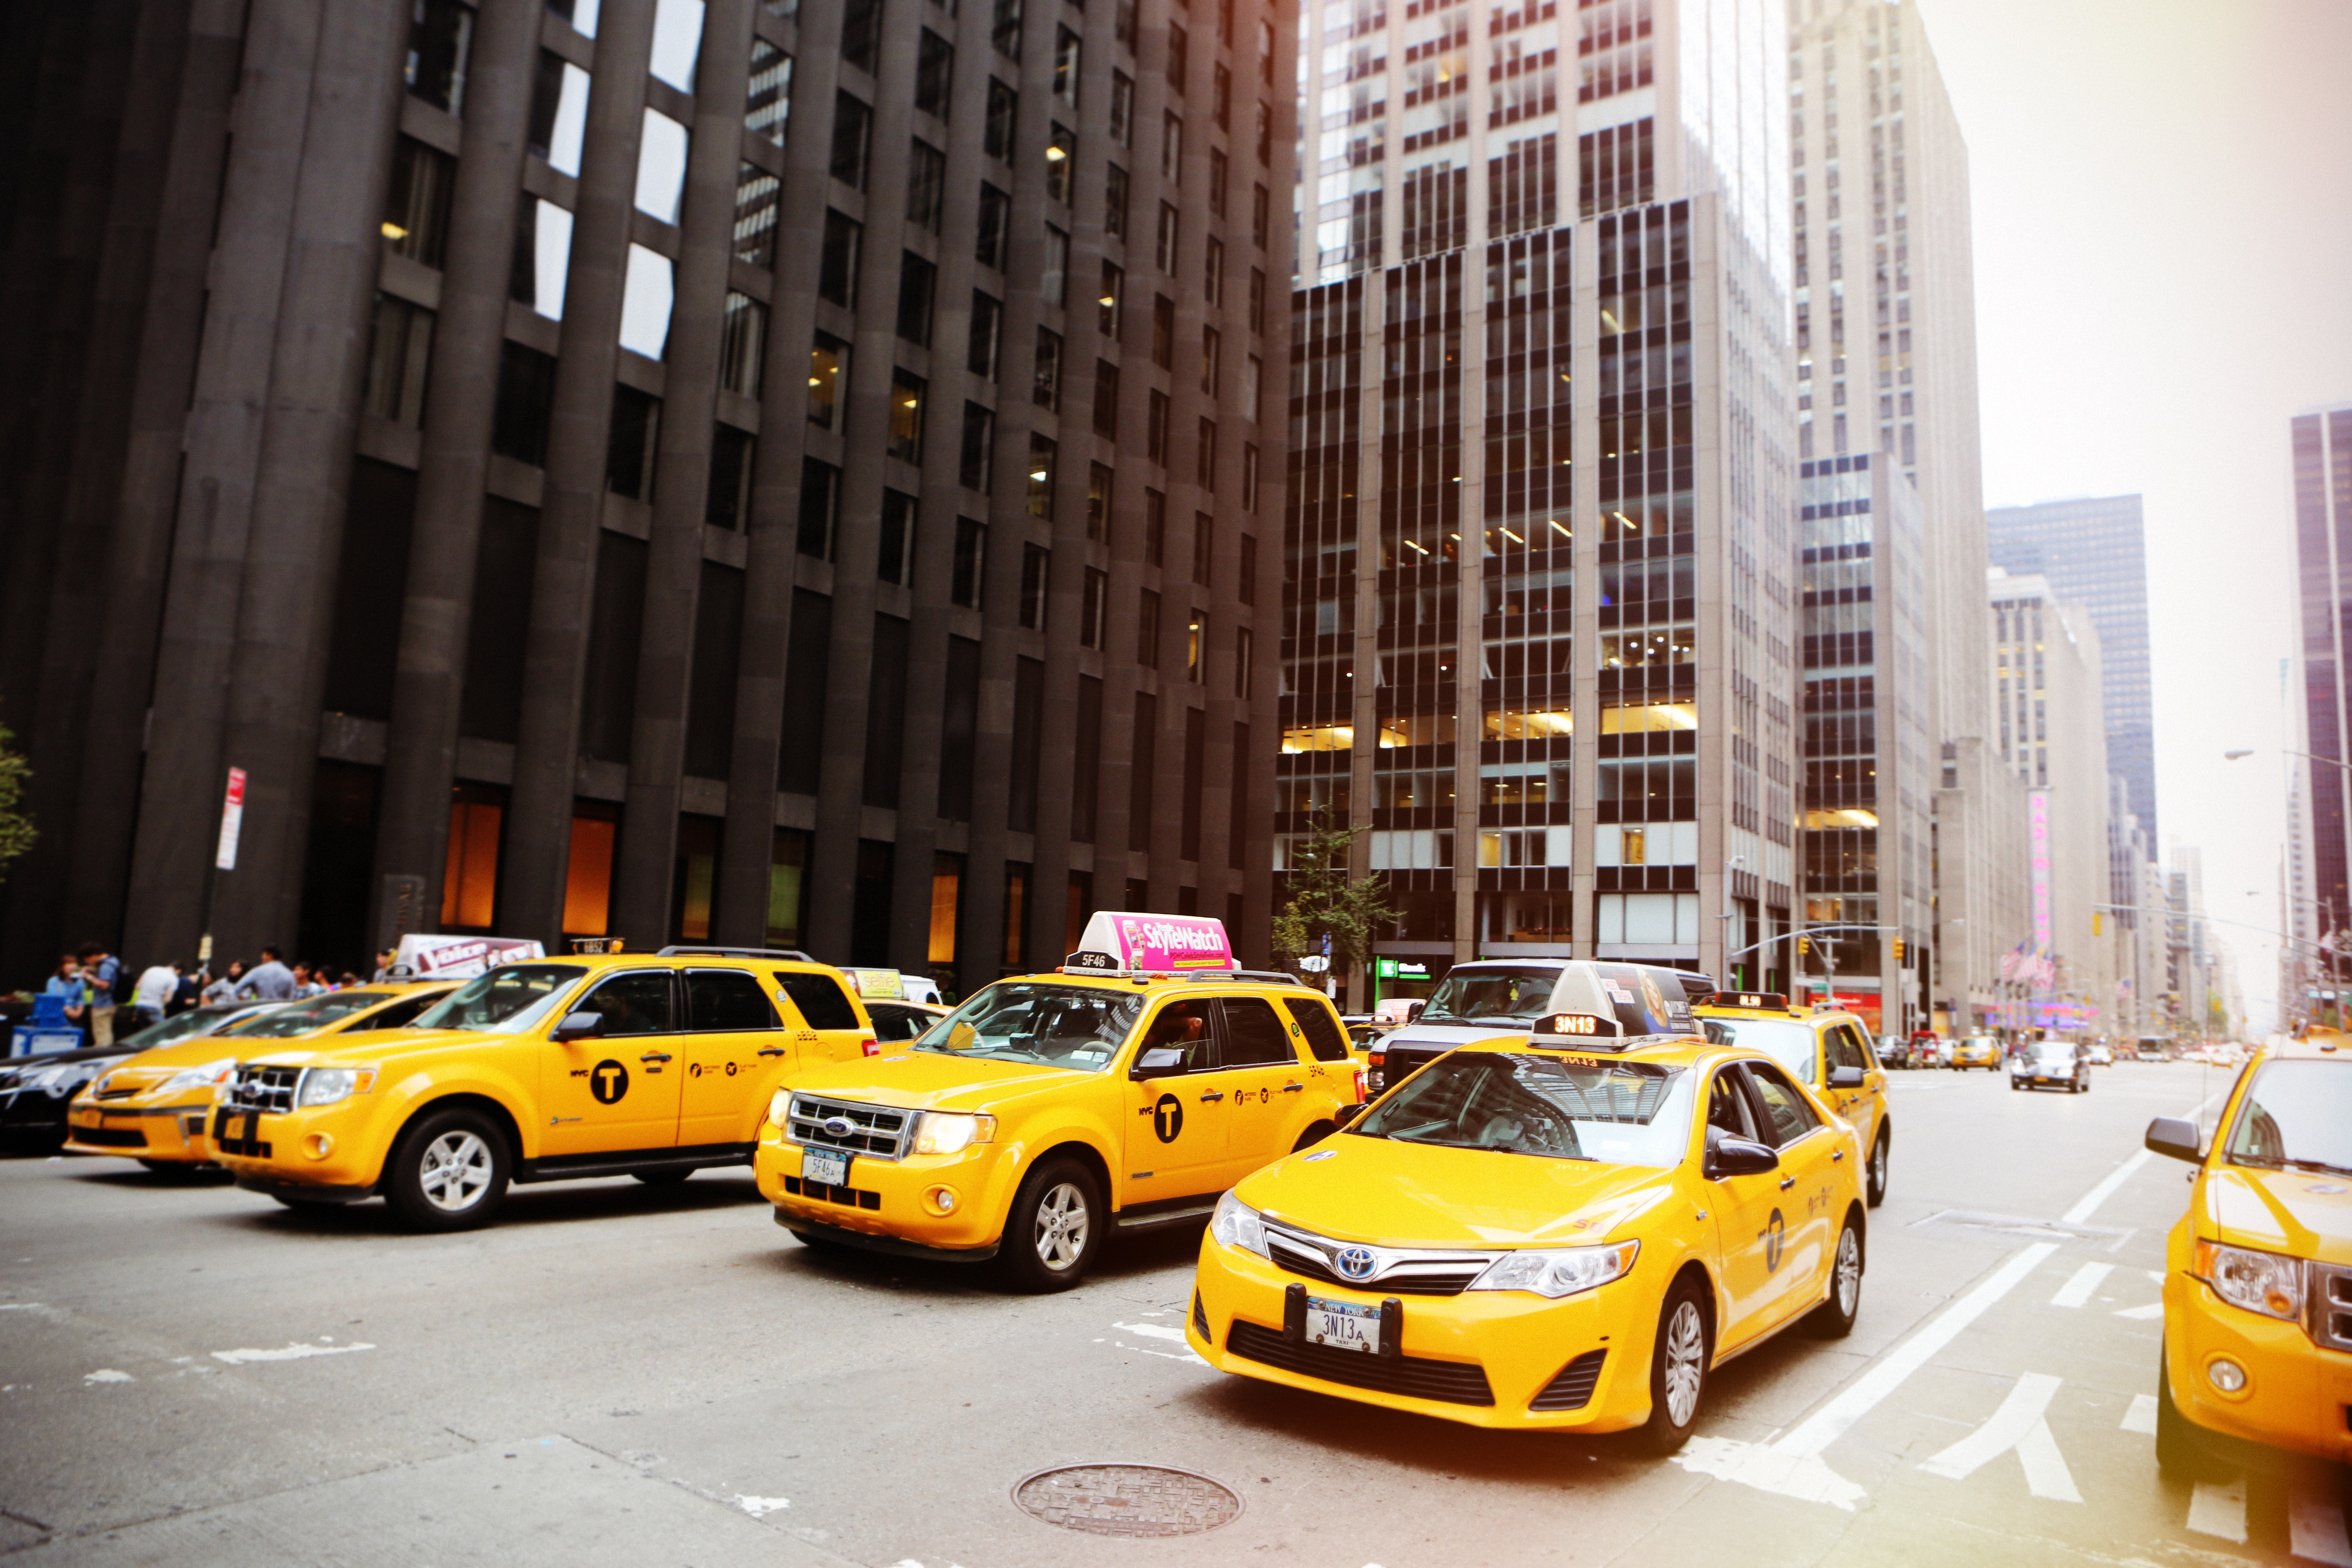 Yellow taxi cabs lined up at a stoplight in the city